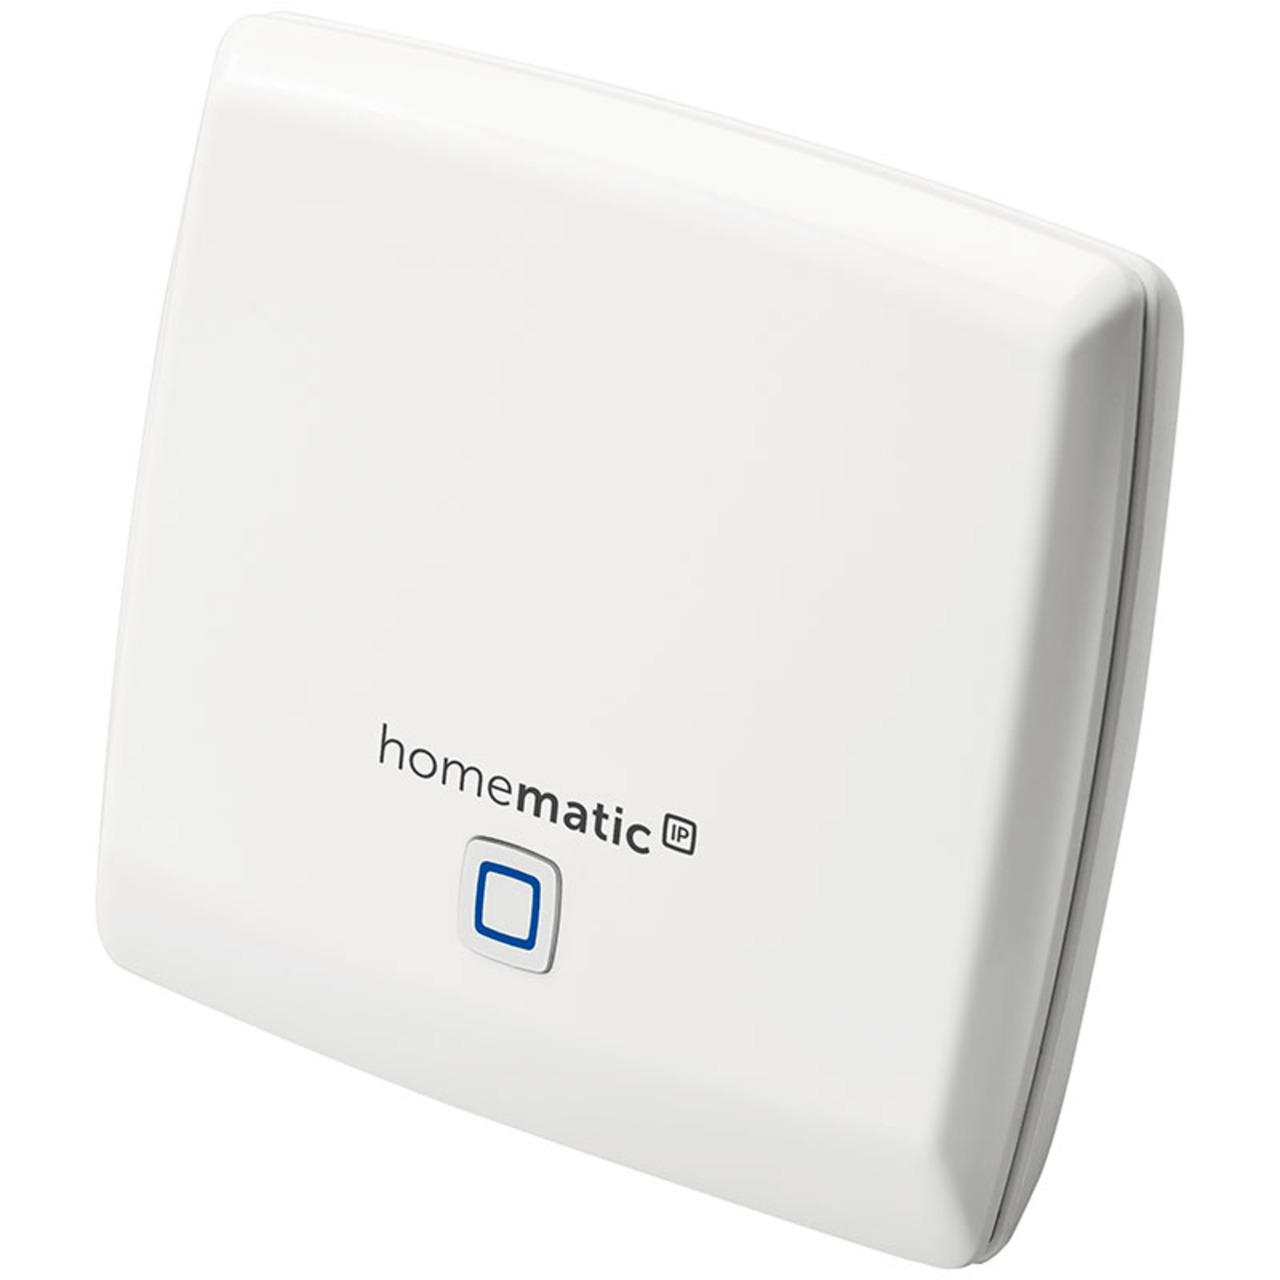 Homematic IP Access Point HMIP-HAP für Smart Home - Hausautomation